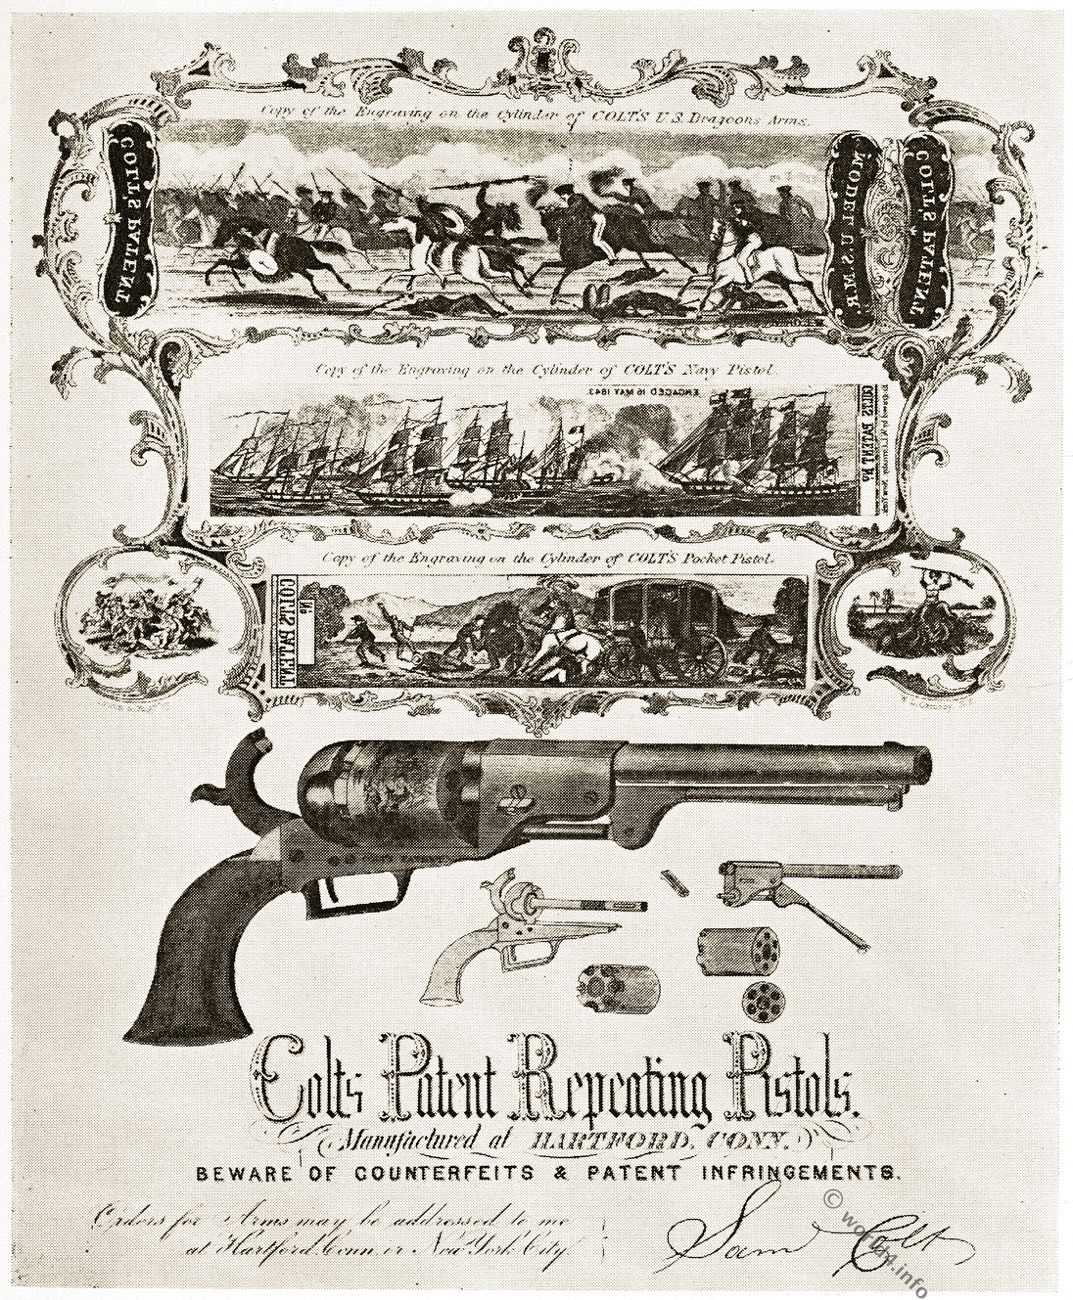 Cold, pistol, Advertising, Army, Texas Navy